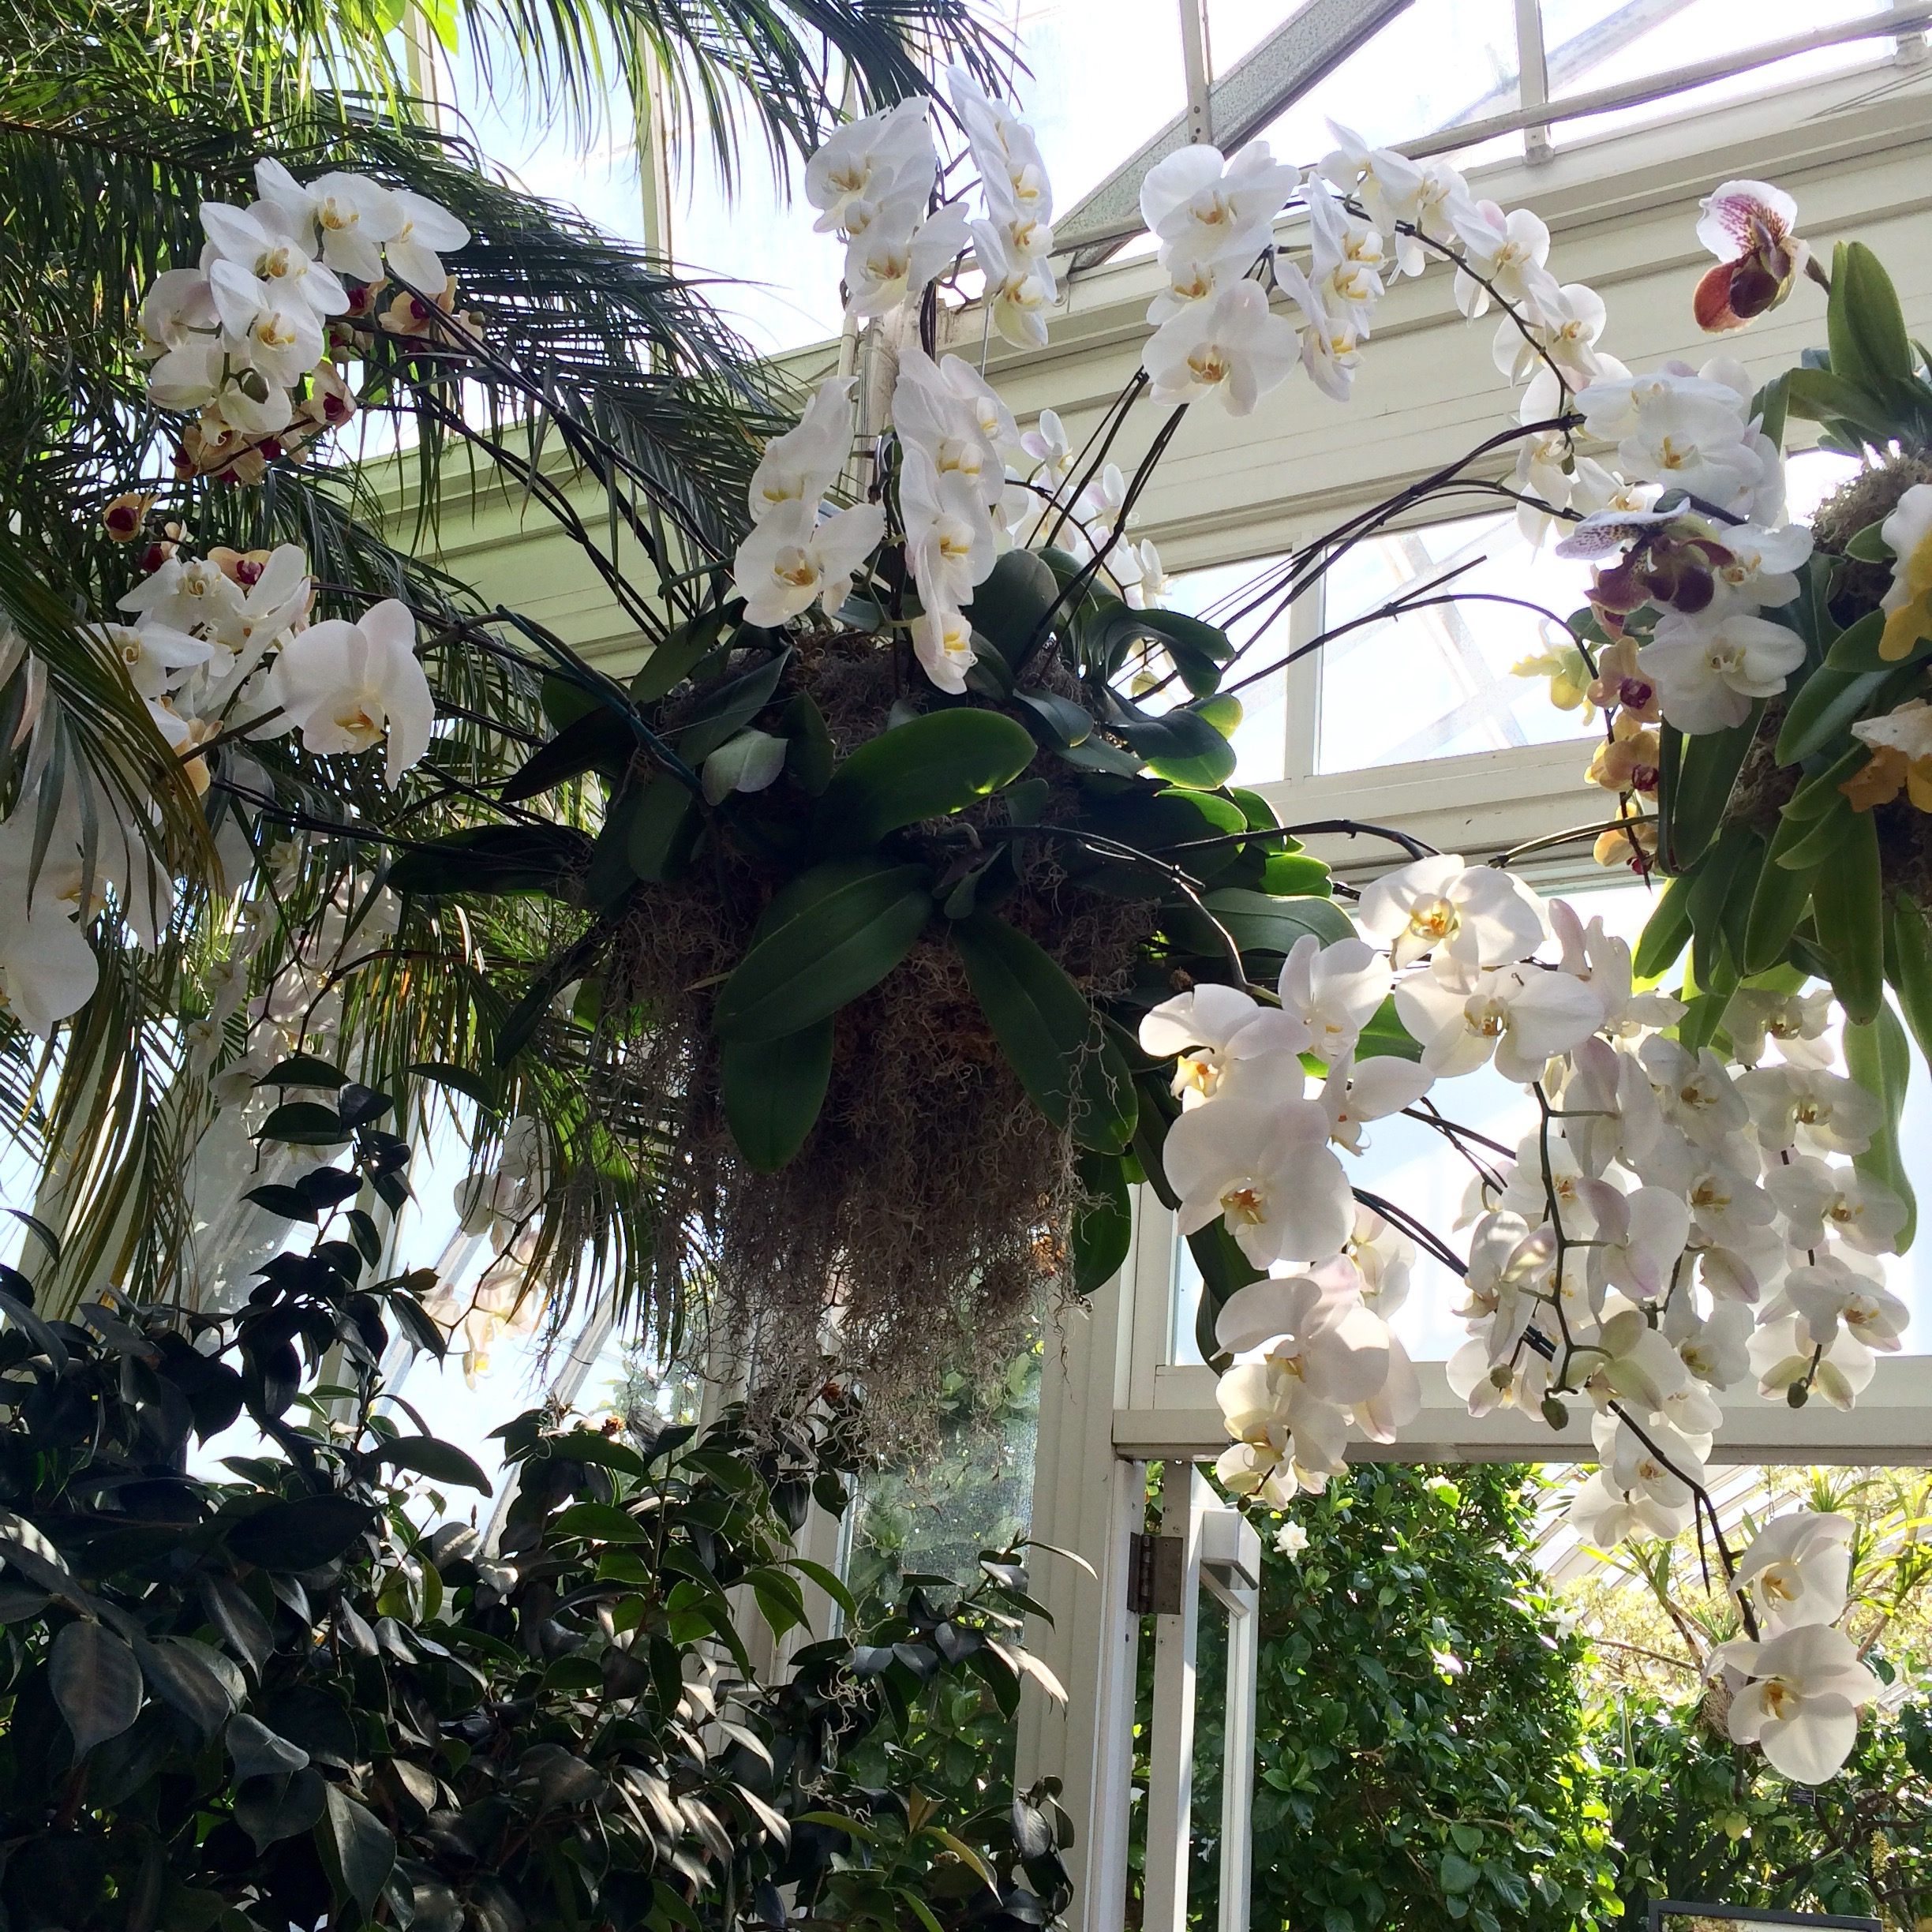 A breathtaking day at the orchid show one of my favorite displays was the huge chandelier of white orchids it actually gave me some wedding ideas while standing under it mozeypictures Gallery